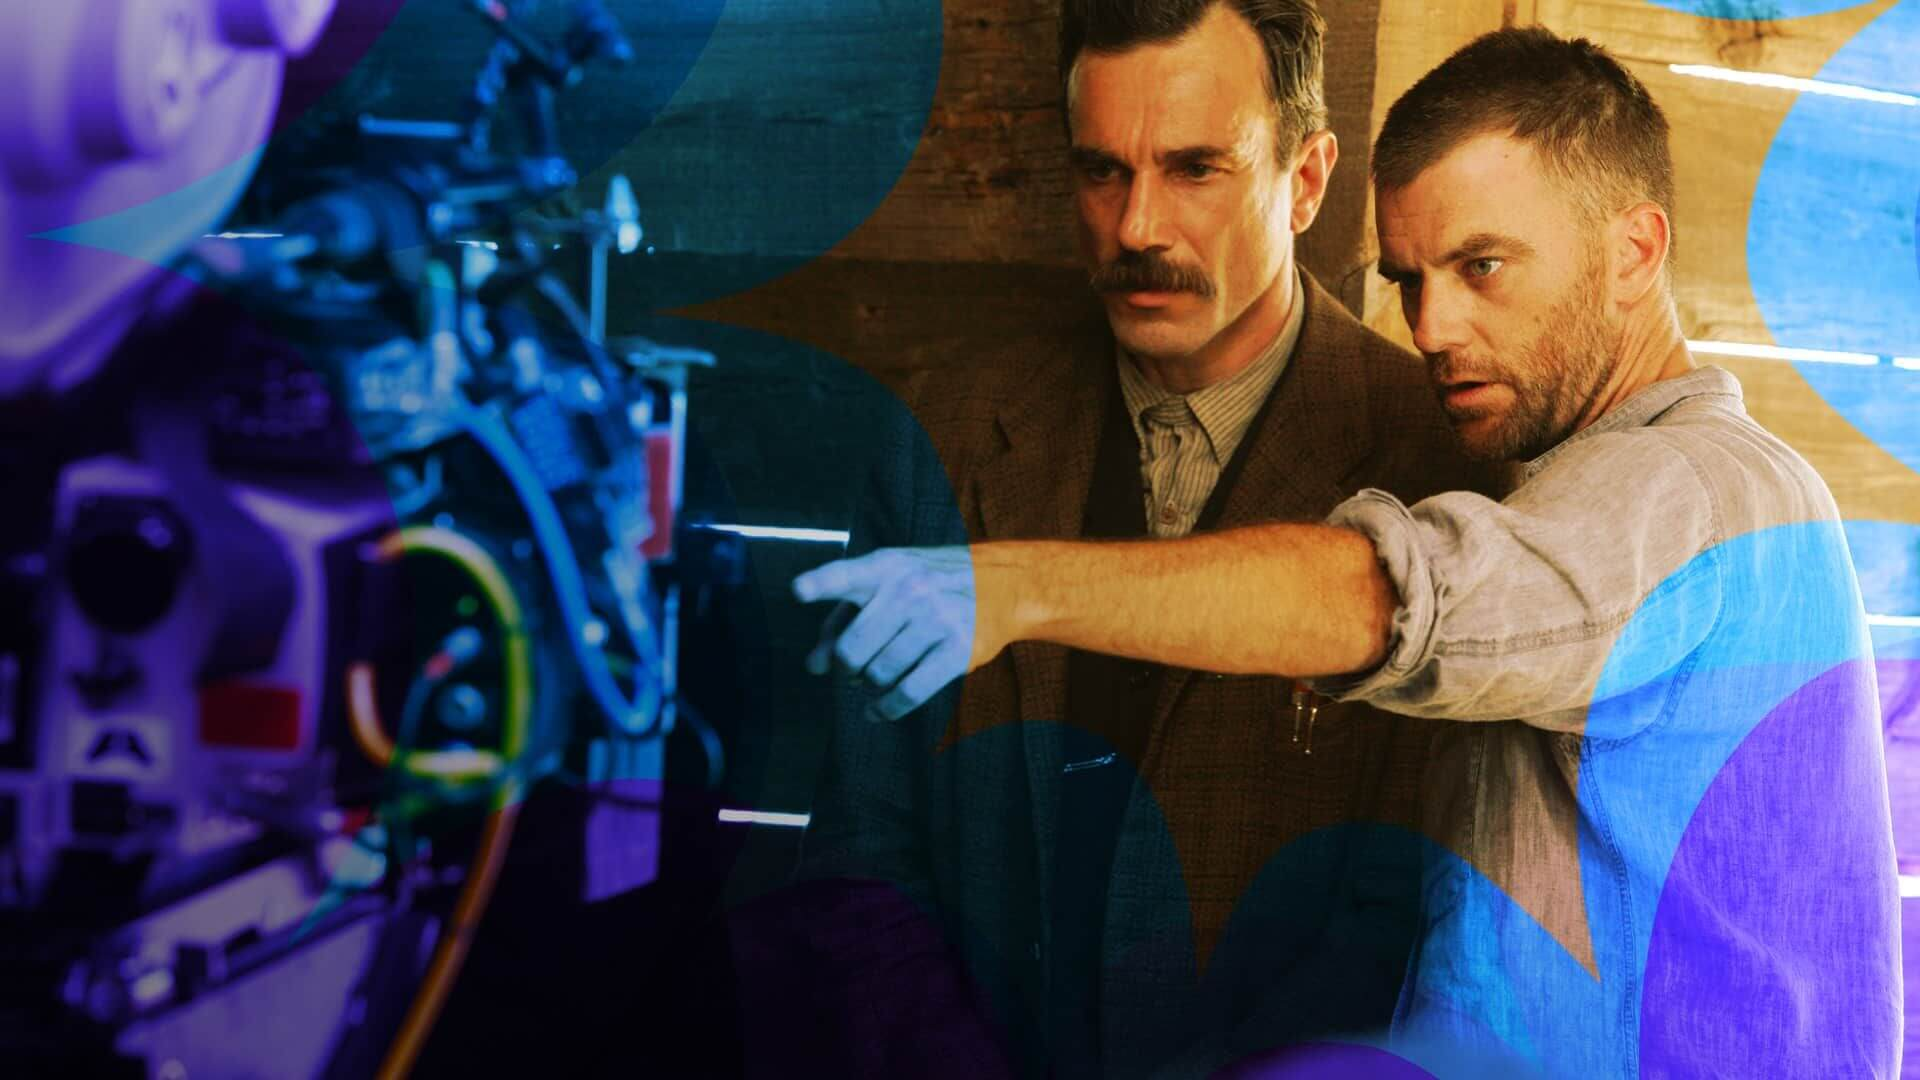 Paul Thomas Anderson Movies - Featured Image